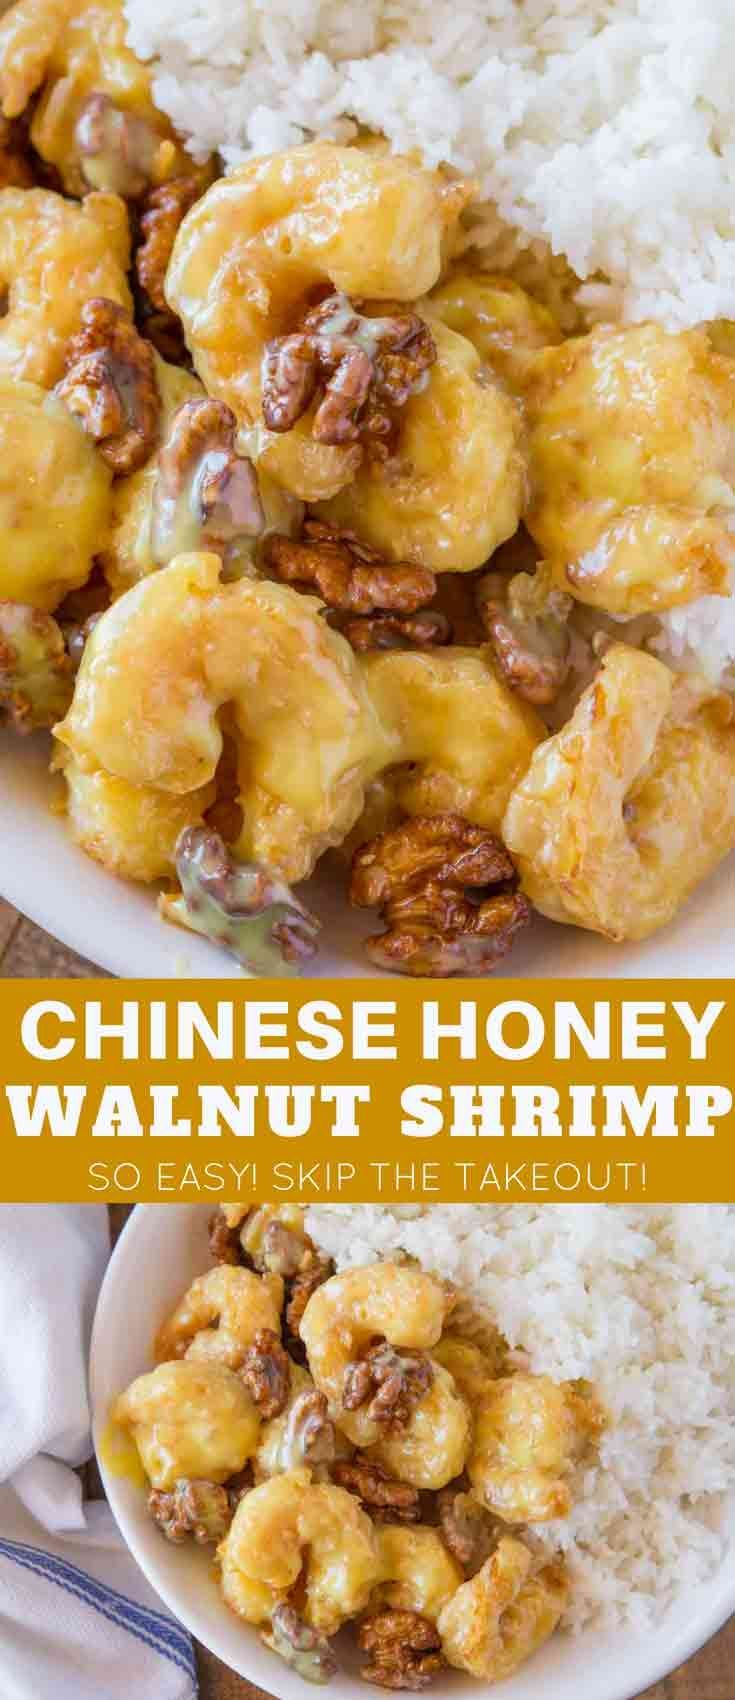 Honey Walnut Shrimp made just like your favorite takeout restaurant with the sweet honey sauce, whole walnuts and crispy fried shrimp! #chineserecipes #shrimp #shrimprecipes #shrimprecipes